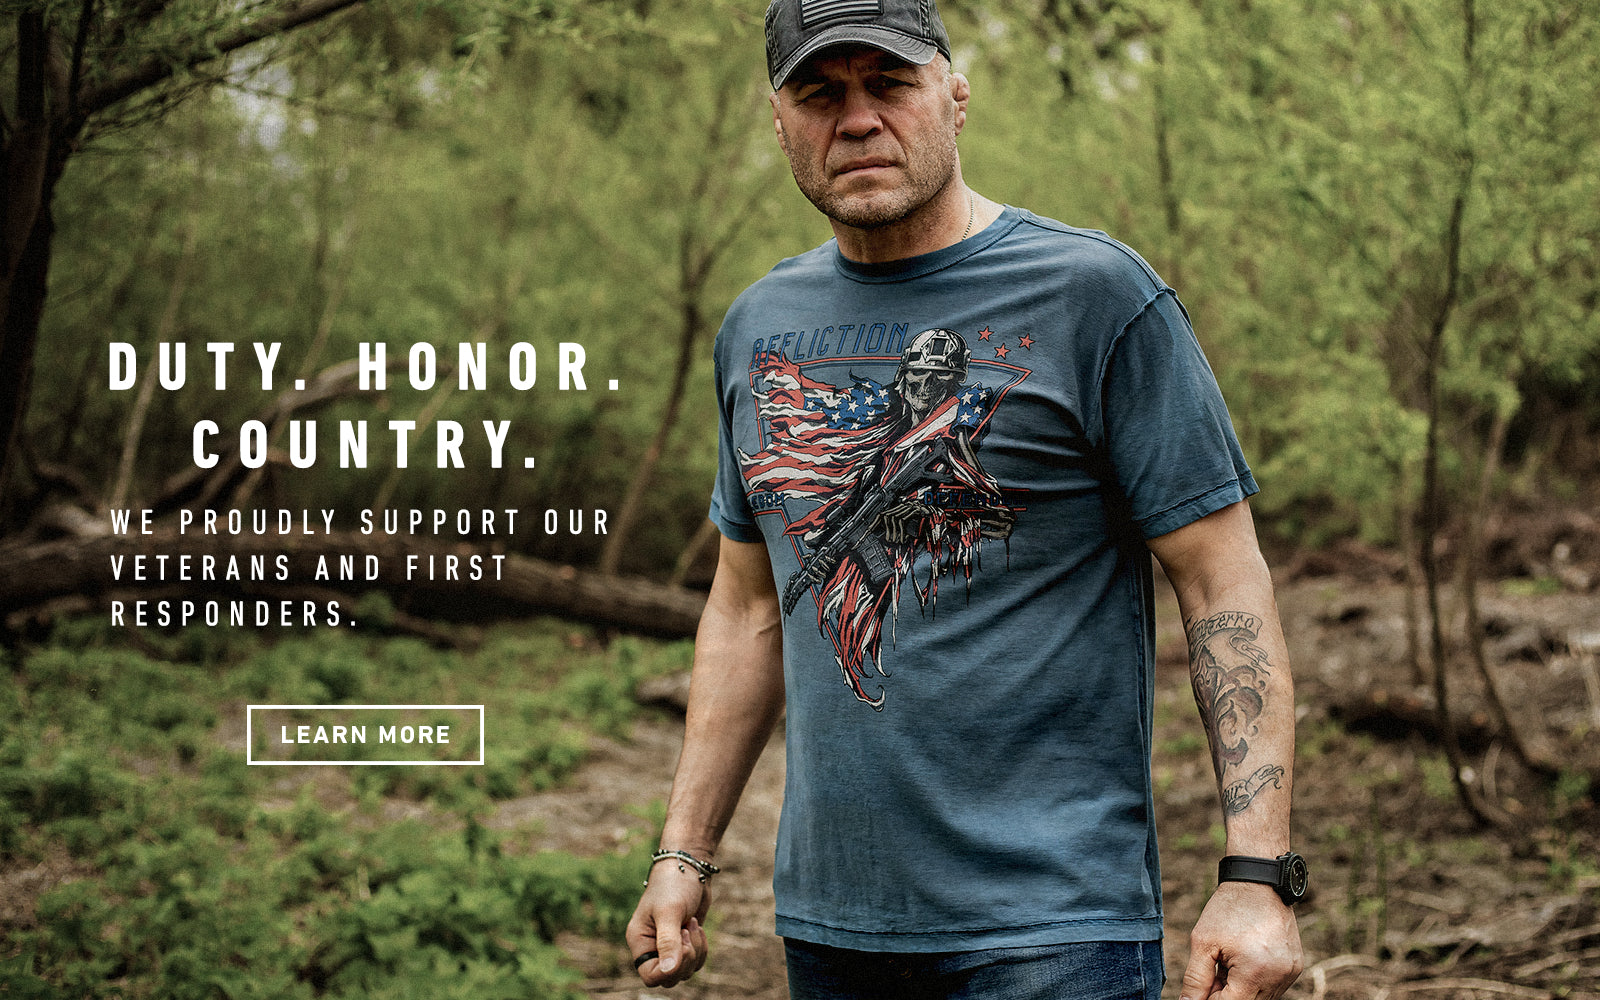 duty honor country - we proudly support out veterans and first responders - learn more